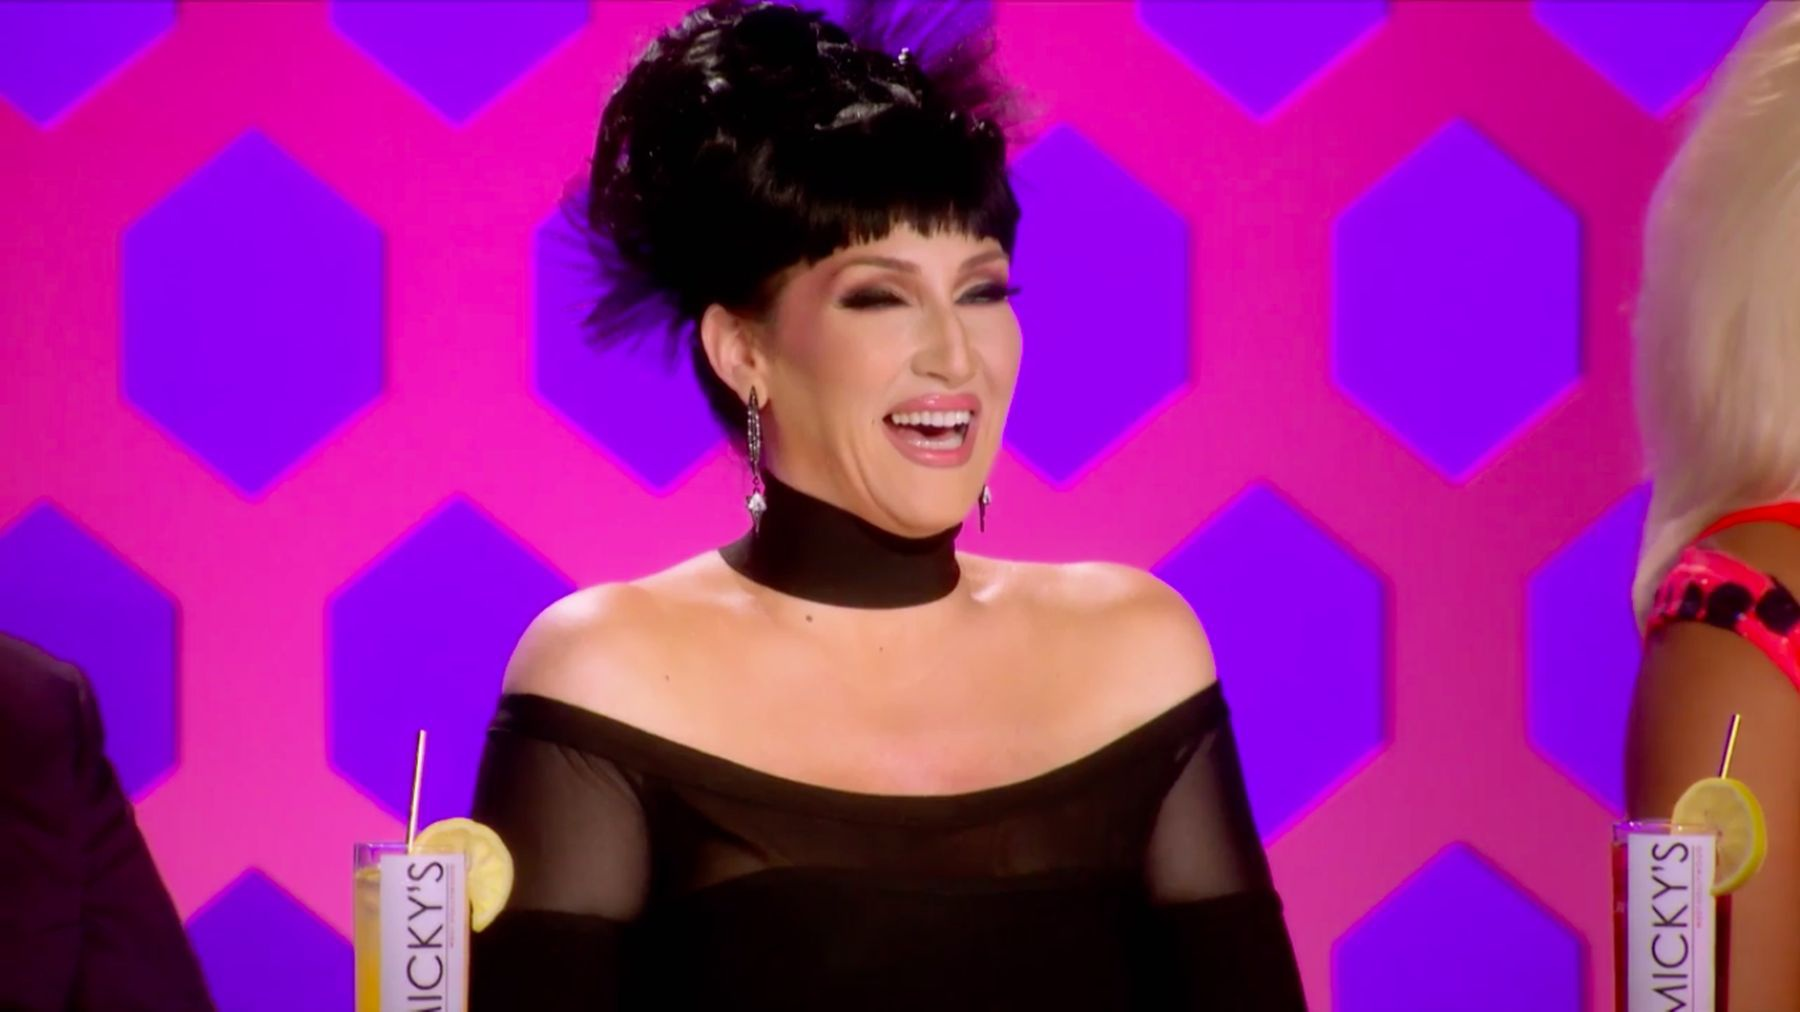 Michelle Visage on Casting 'Drag Race': Don't Worry About Weaponizing Your BFA